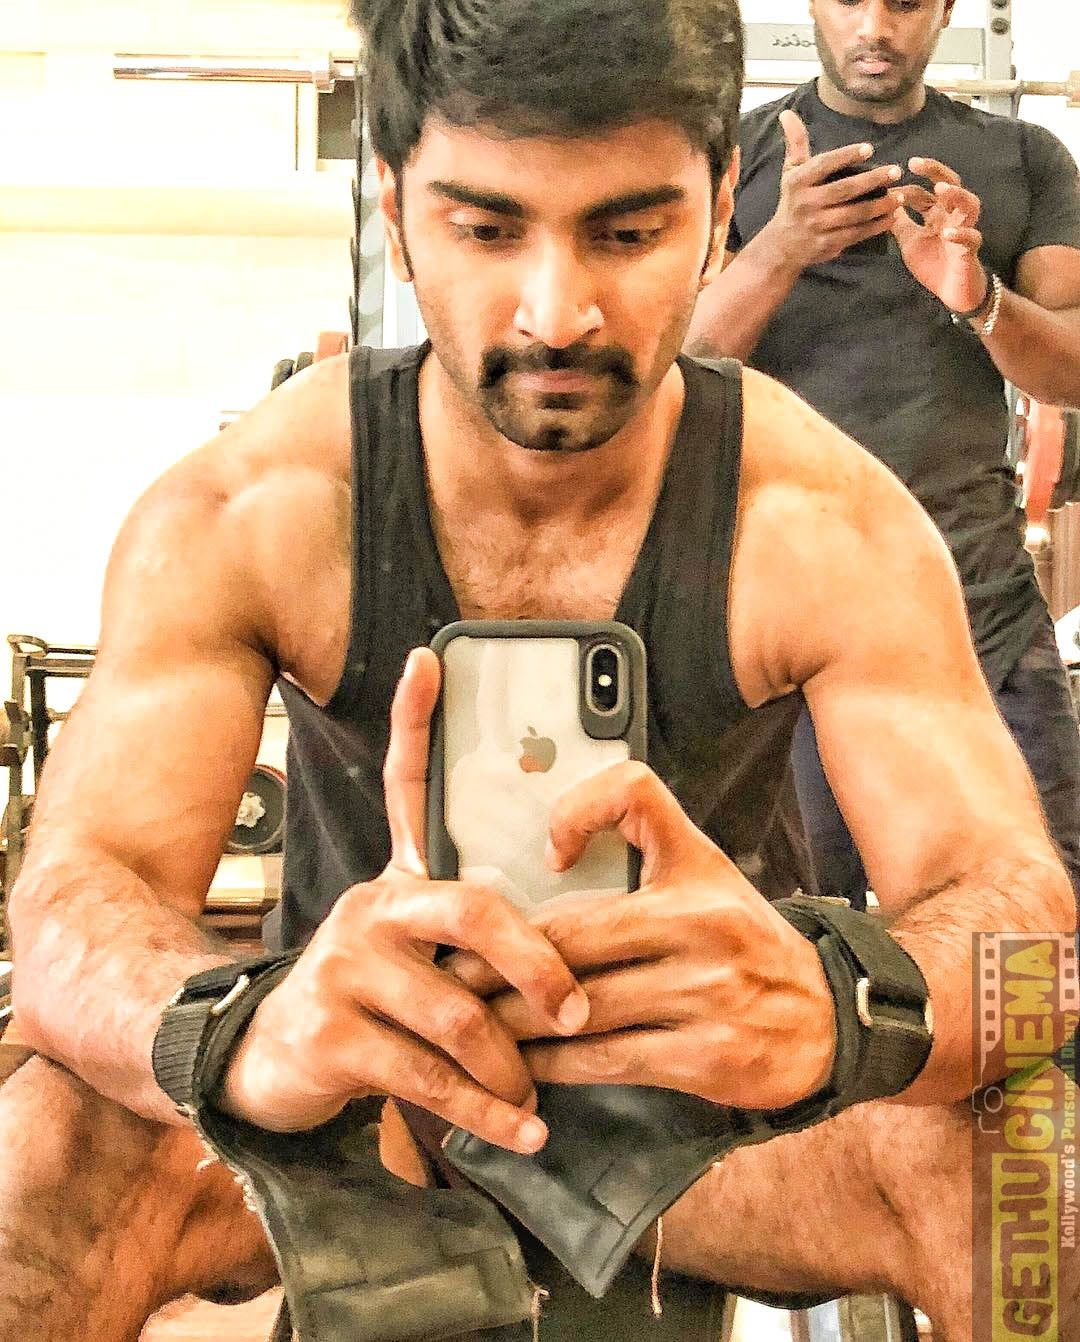 Actor Atharvaa 2018 Hd Gallery Tamil Actor Gallery Gym Workouts